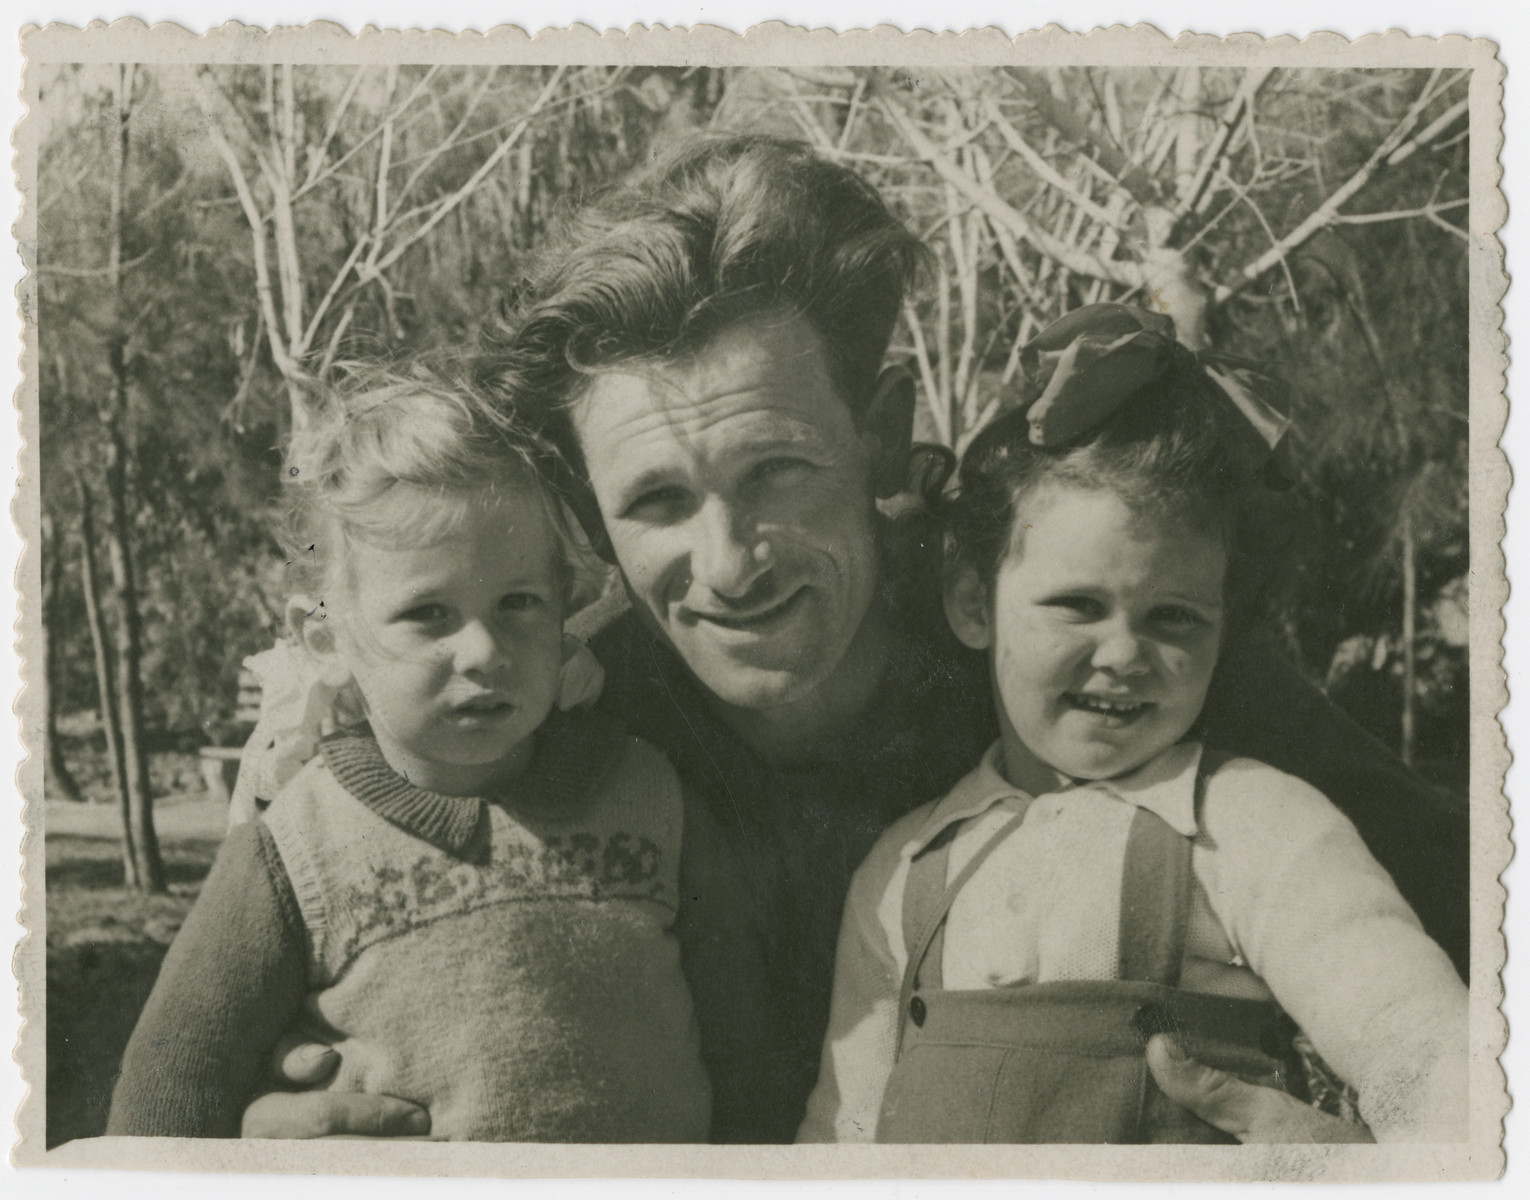 Yehuda Bielski poses with his daughter Nili and his cousin's daughter Ruth.